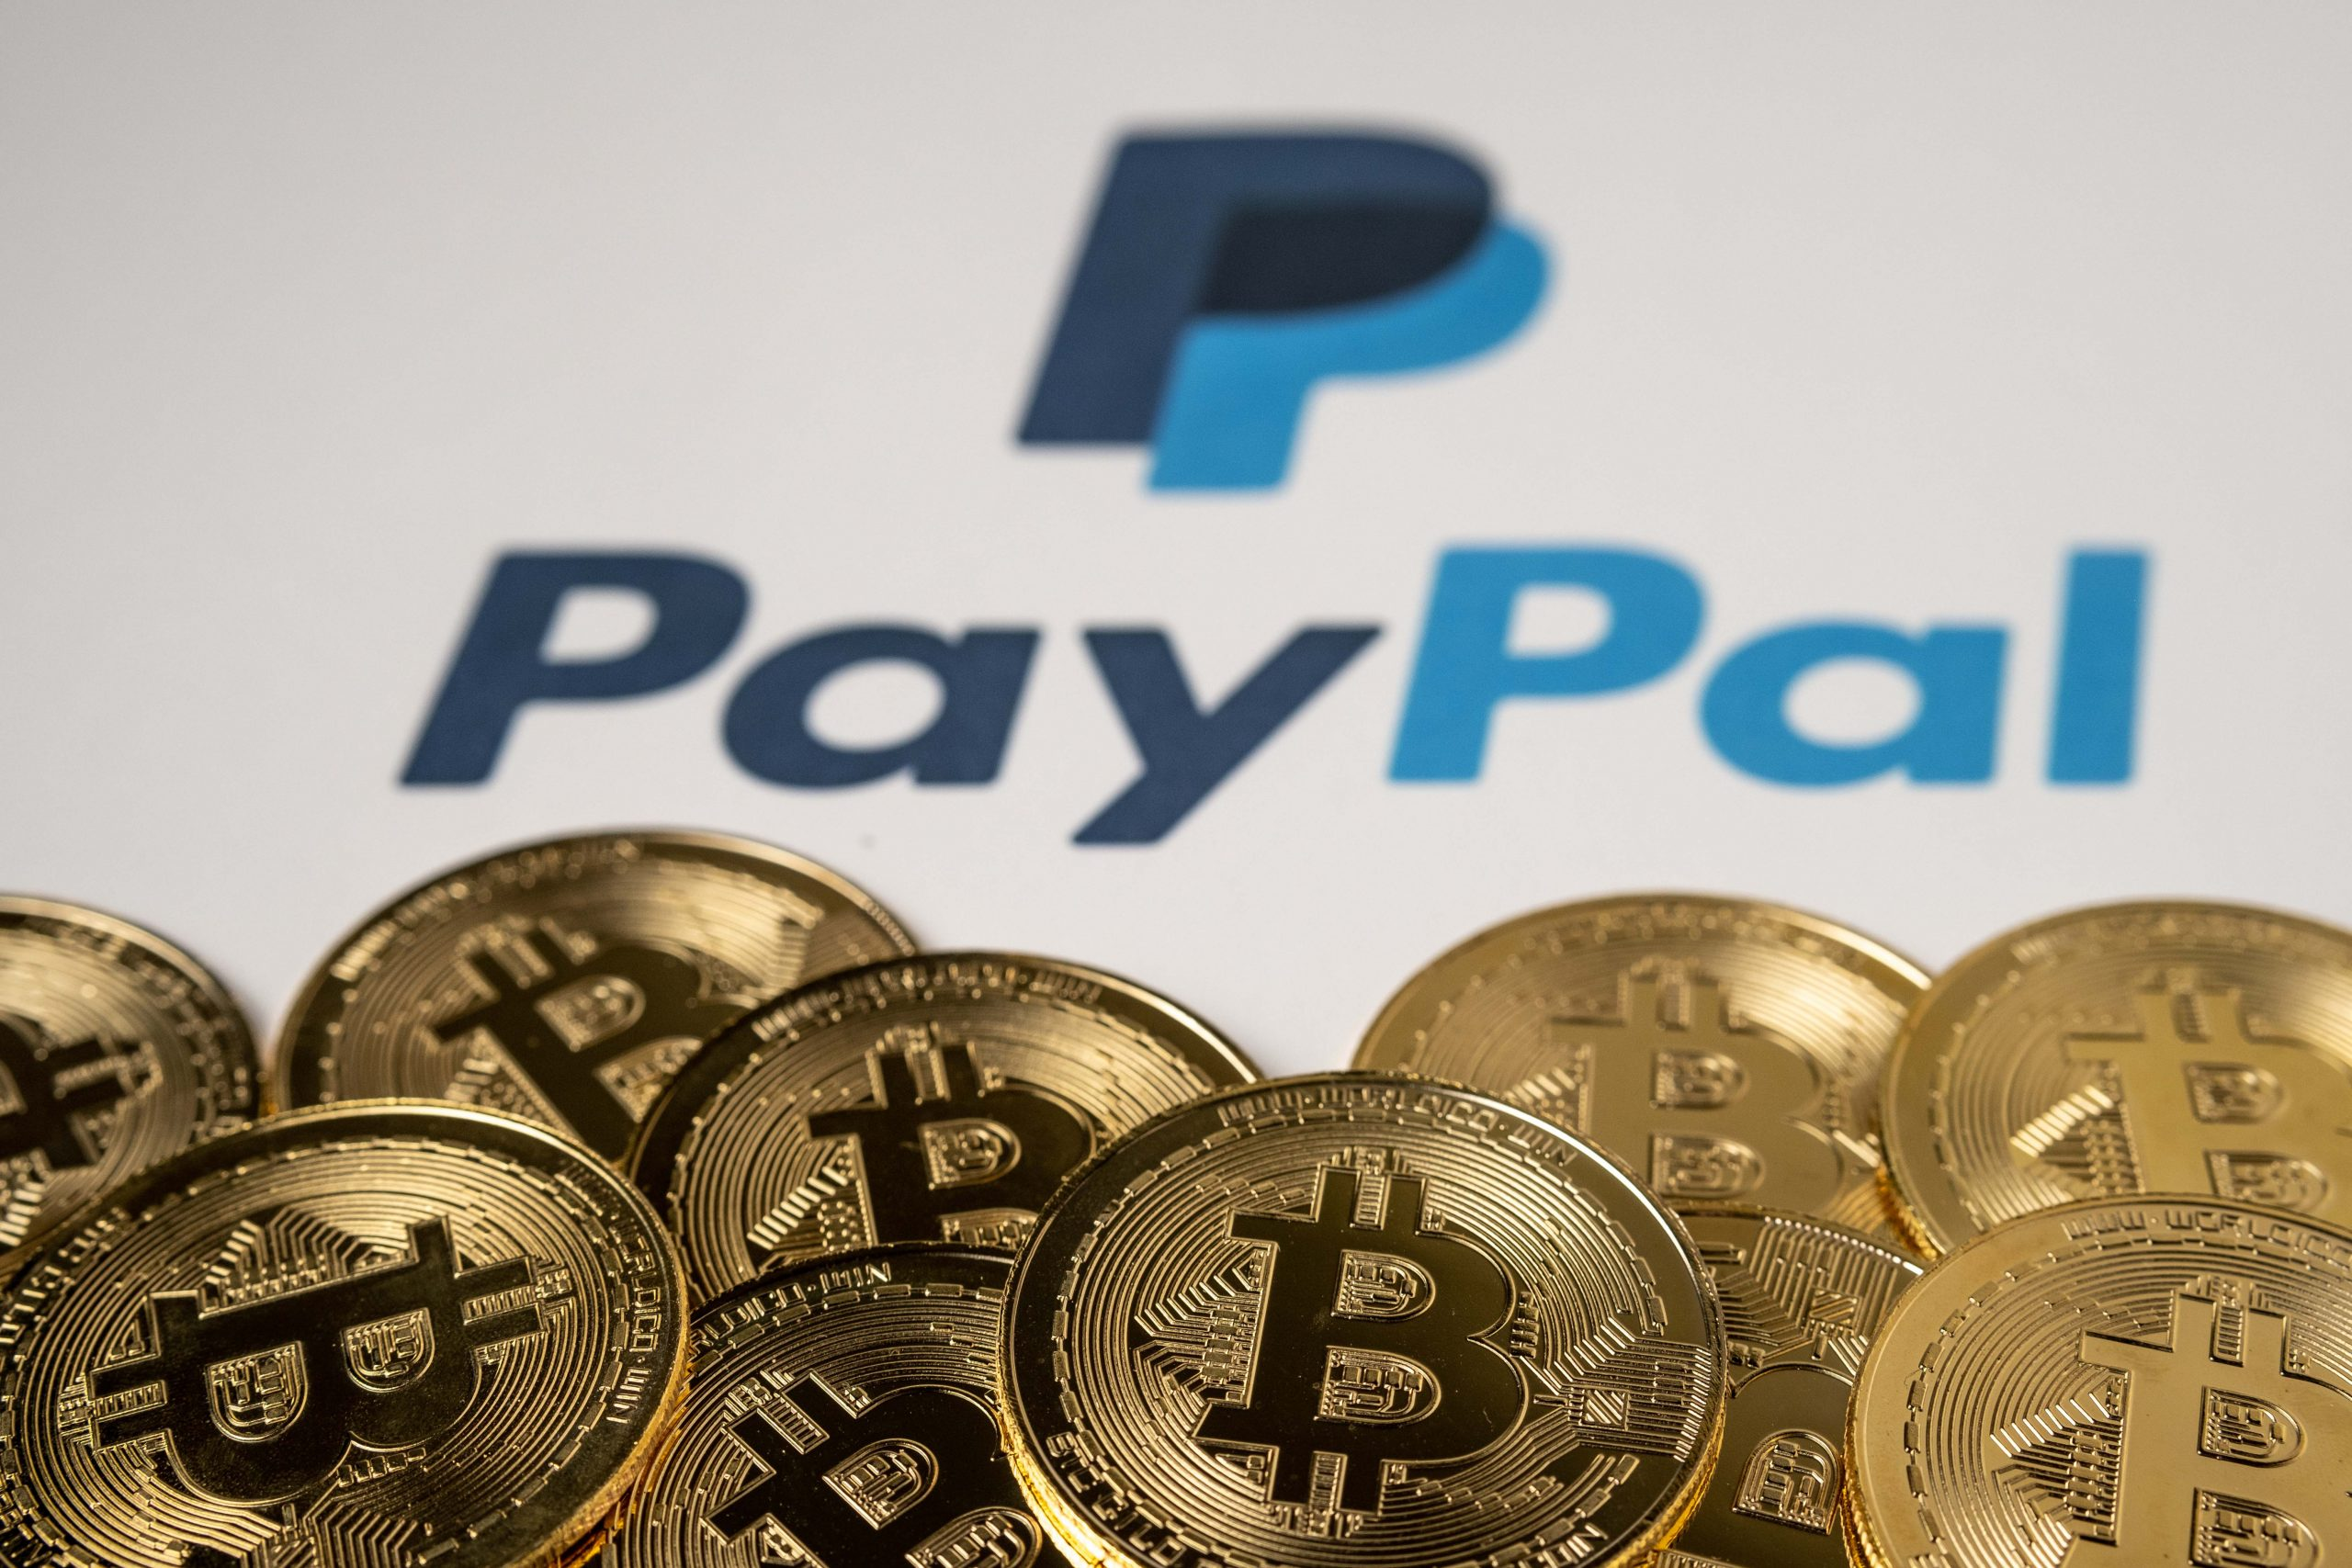 PayPal's Bitcoin adoption make cryptocurrency more mainstream?